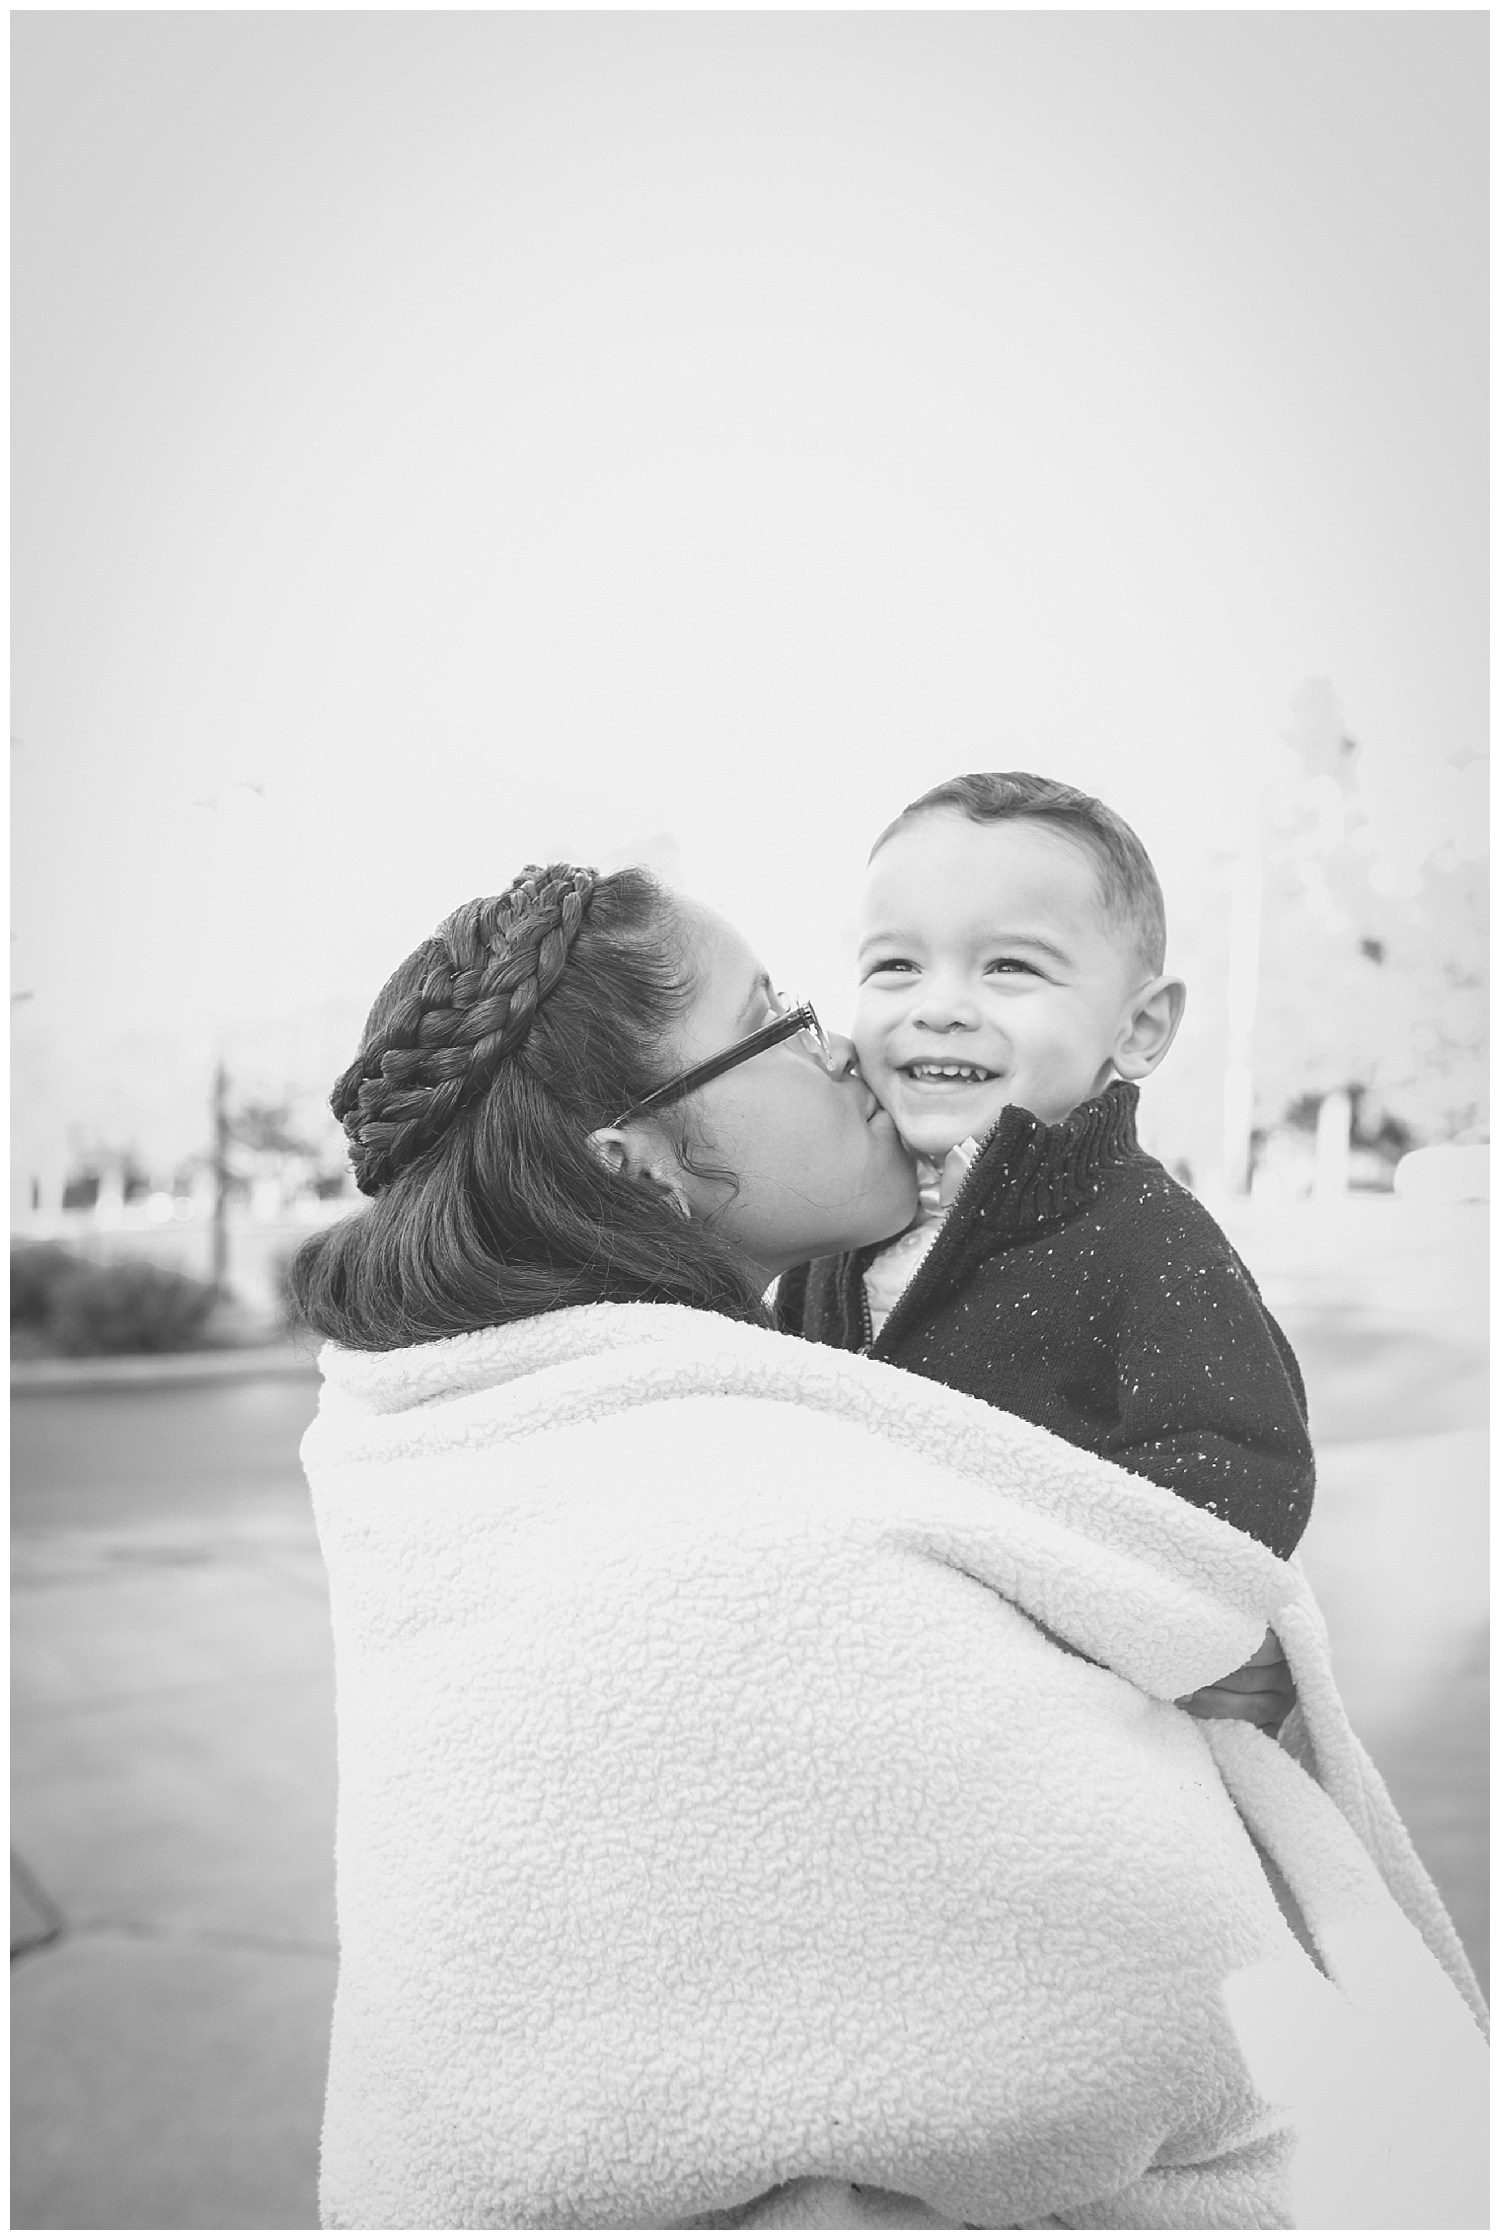 Harley School Family session - Rochester NY - Whimsy roots 26.jpg